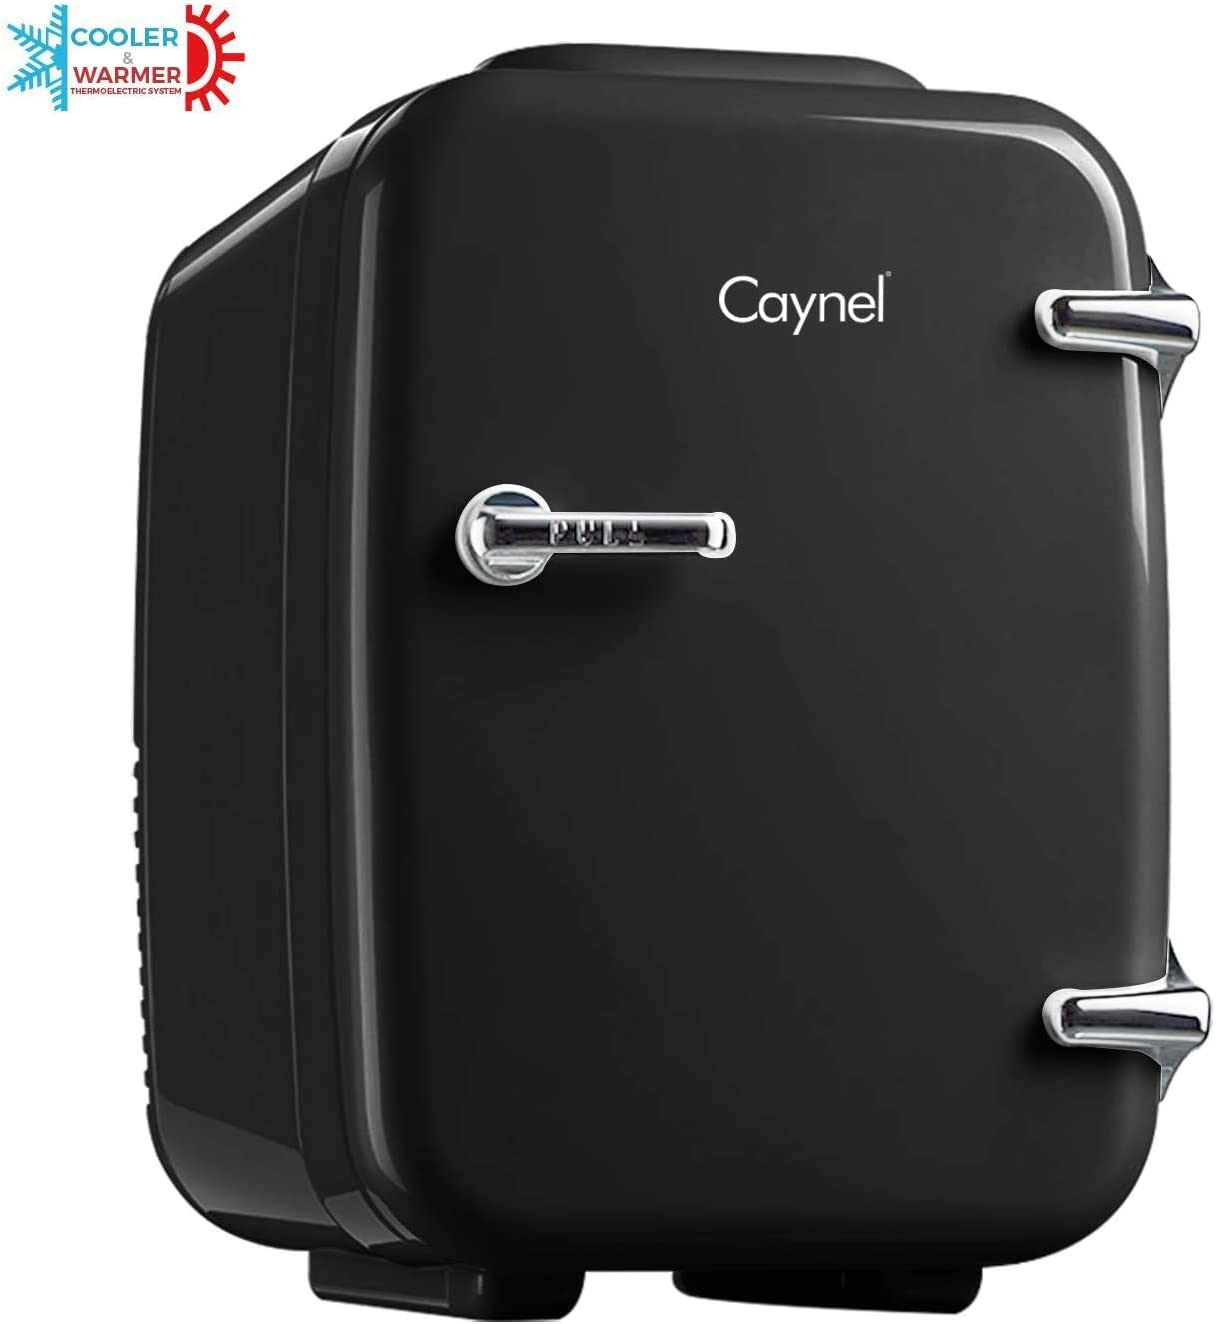 CAYNEL Mini Fridge Cooler and Warmer, (4Liter / 6Can) Portable Compact Personal Fridge, AC/DC Thermoelectric System, 100% Freon-Free Eco Friendly for Home, Office and Car (Black)